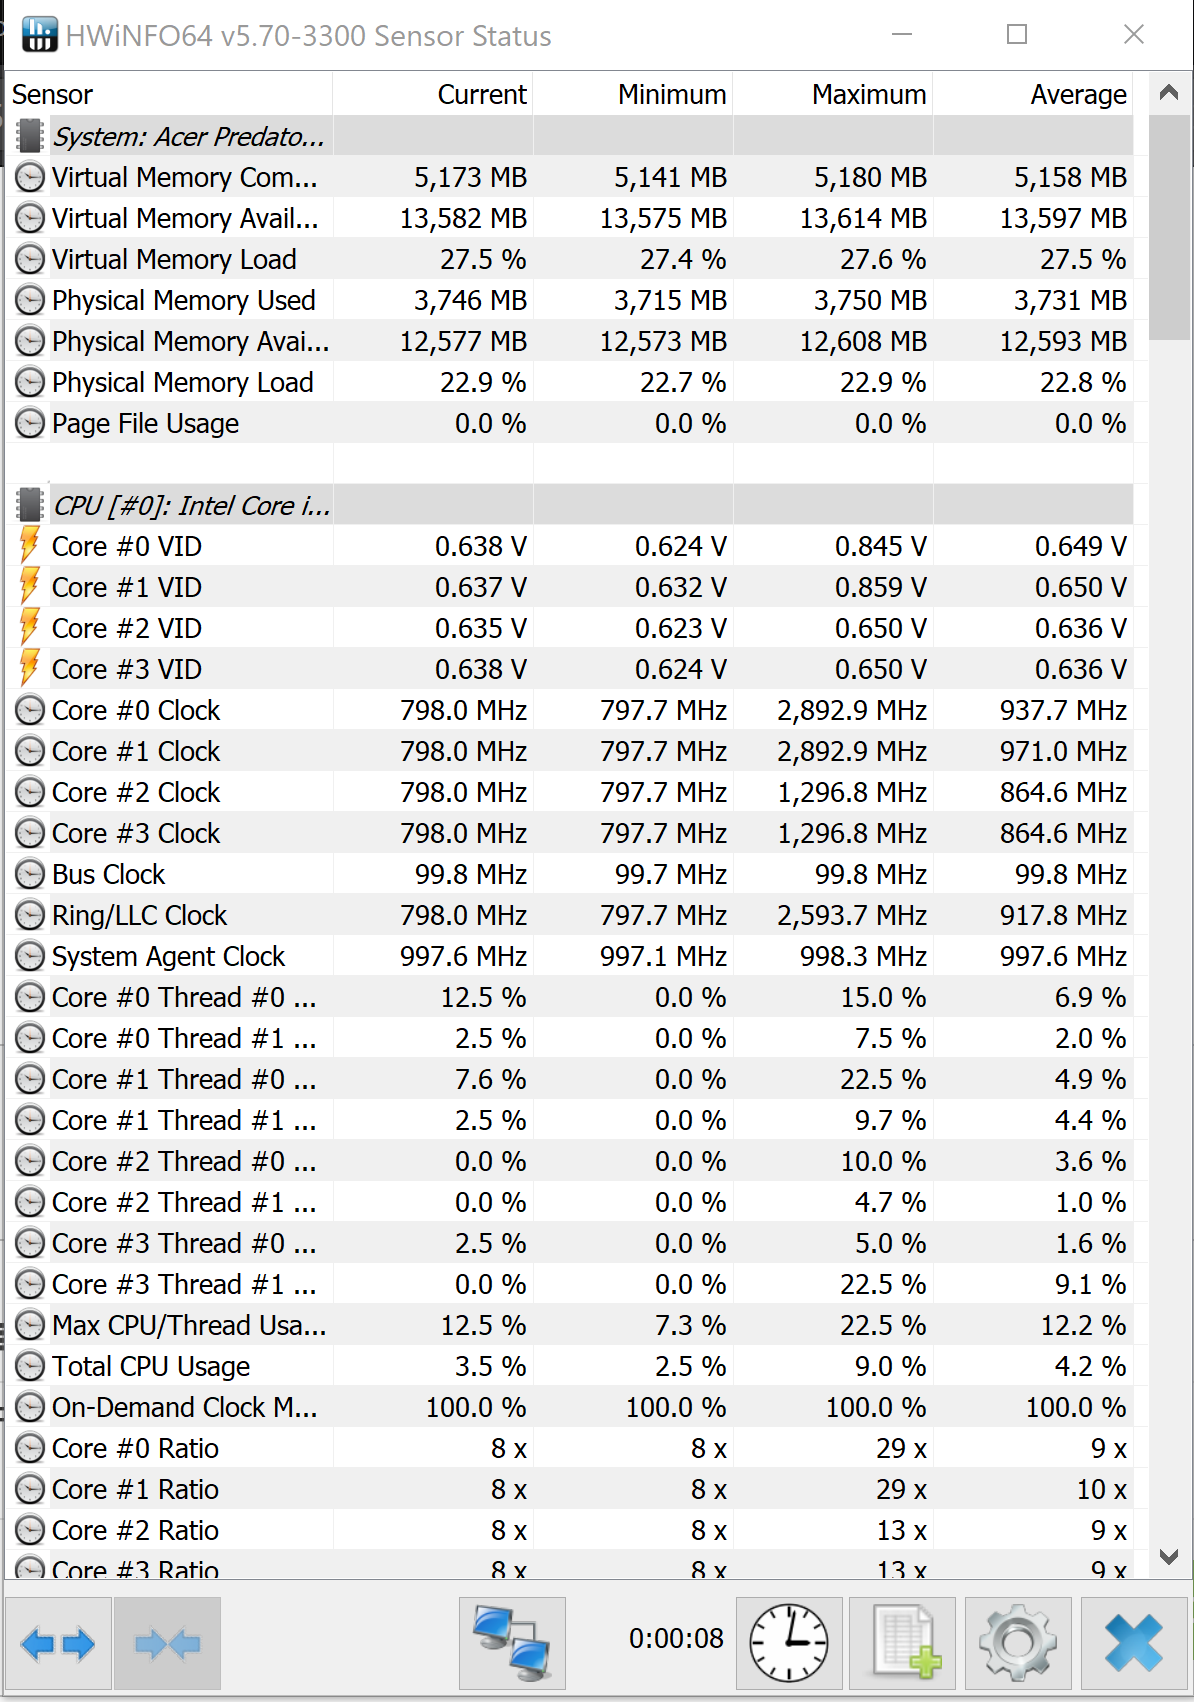 Anyone know how to resolve a CPU utilization that won't go